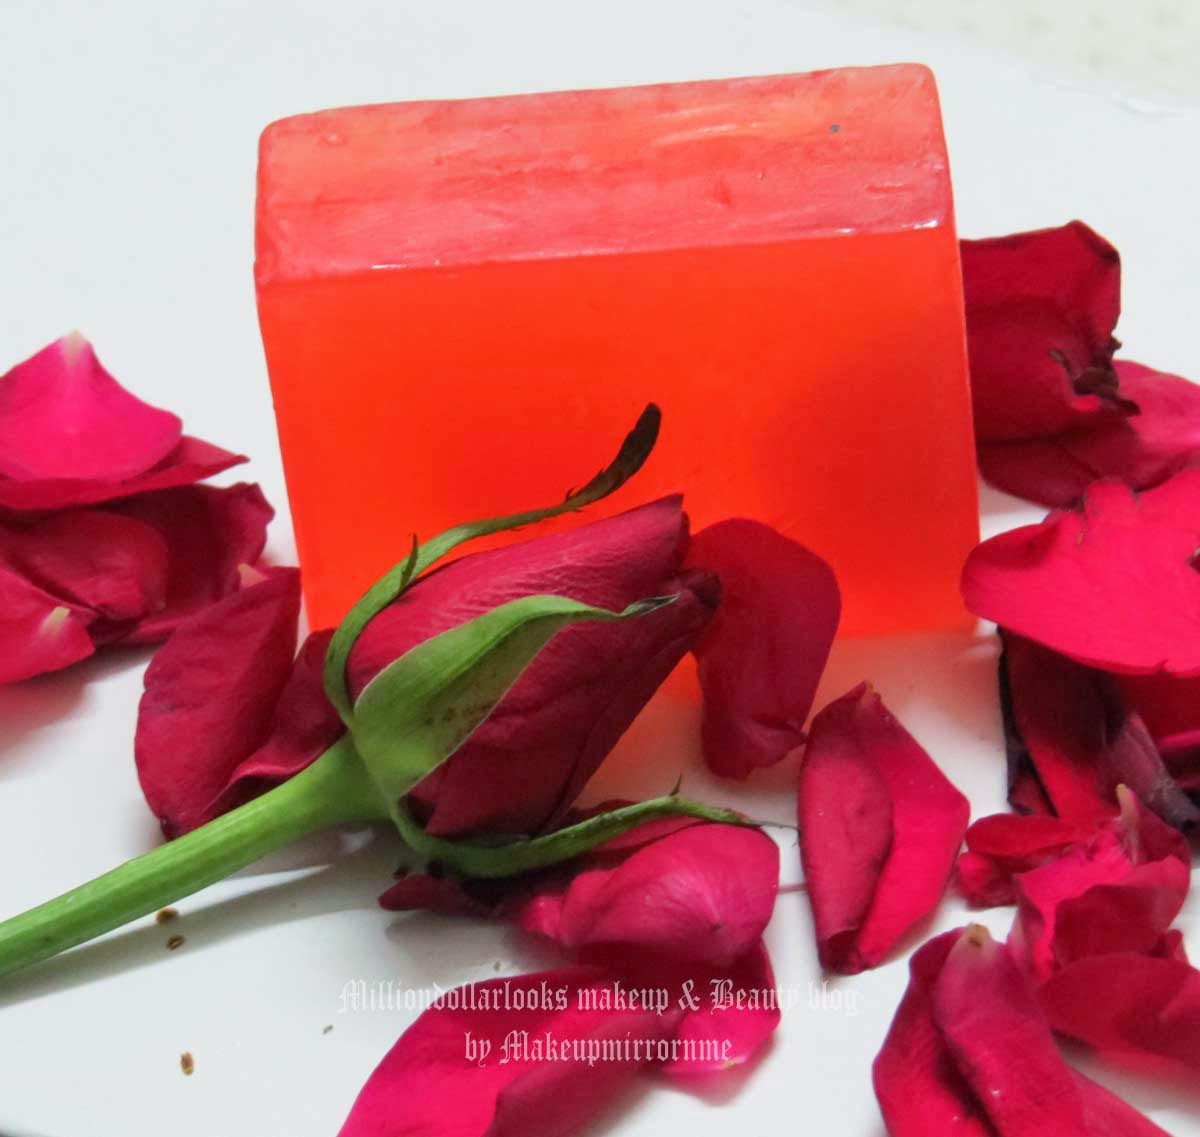 Khadi Rose Sandal Herbal Soap Review & Pictures, Khadi herbals bath soaps review, Khadi bath ptoducts, Indian beauty bloggers, Indian makeup and beauty blog, Top indian beauty blogs, Bath and body products, Indian herbal skincare brands, Indian herbal brands, Khadi India, Khadi products review, Where to buy khadi products online, Price for khadi soaps, Herbal soaps review, Handmade soaps review, Rose soap,